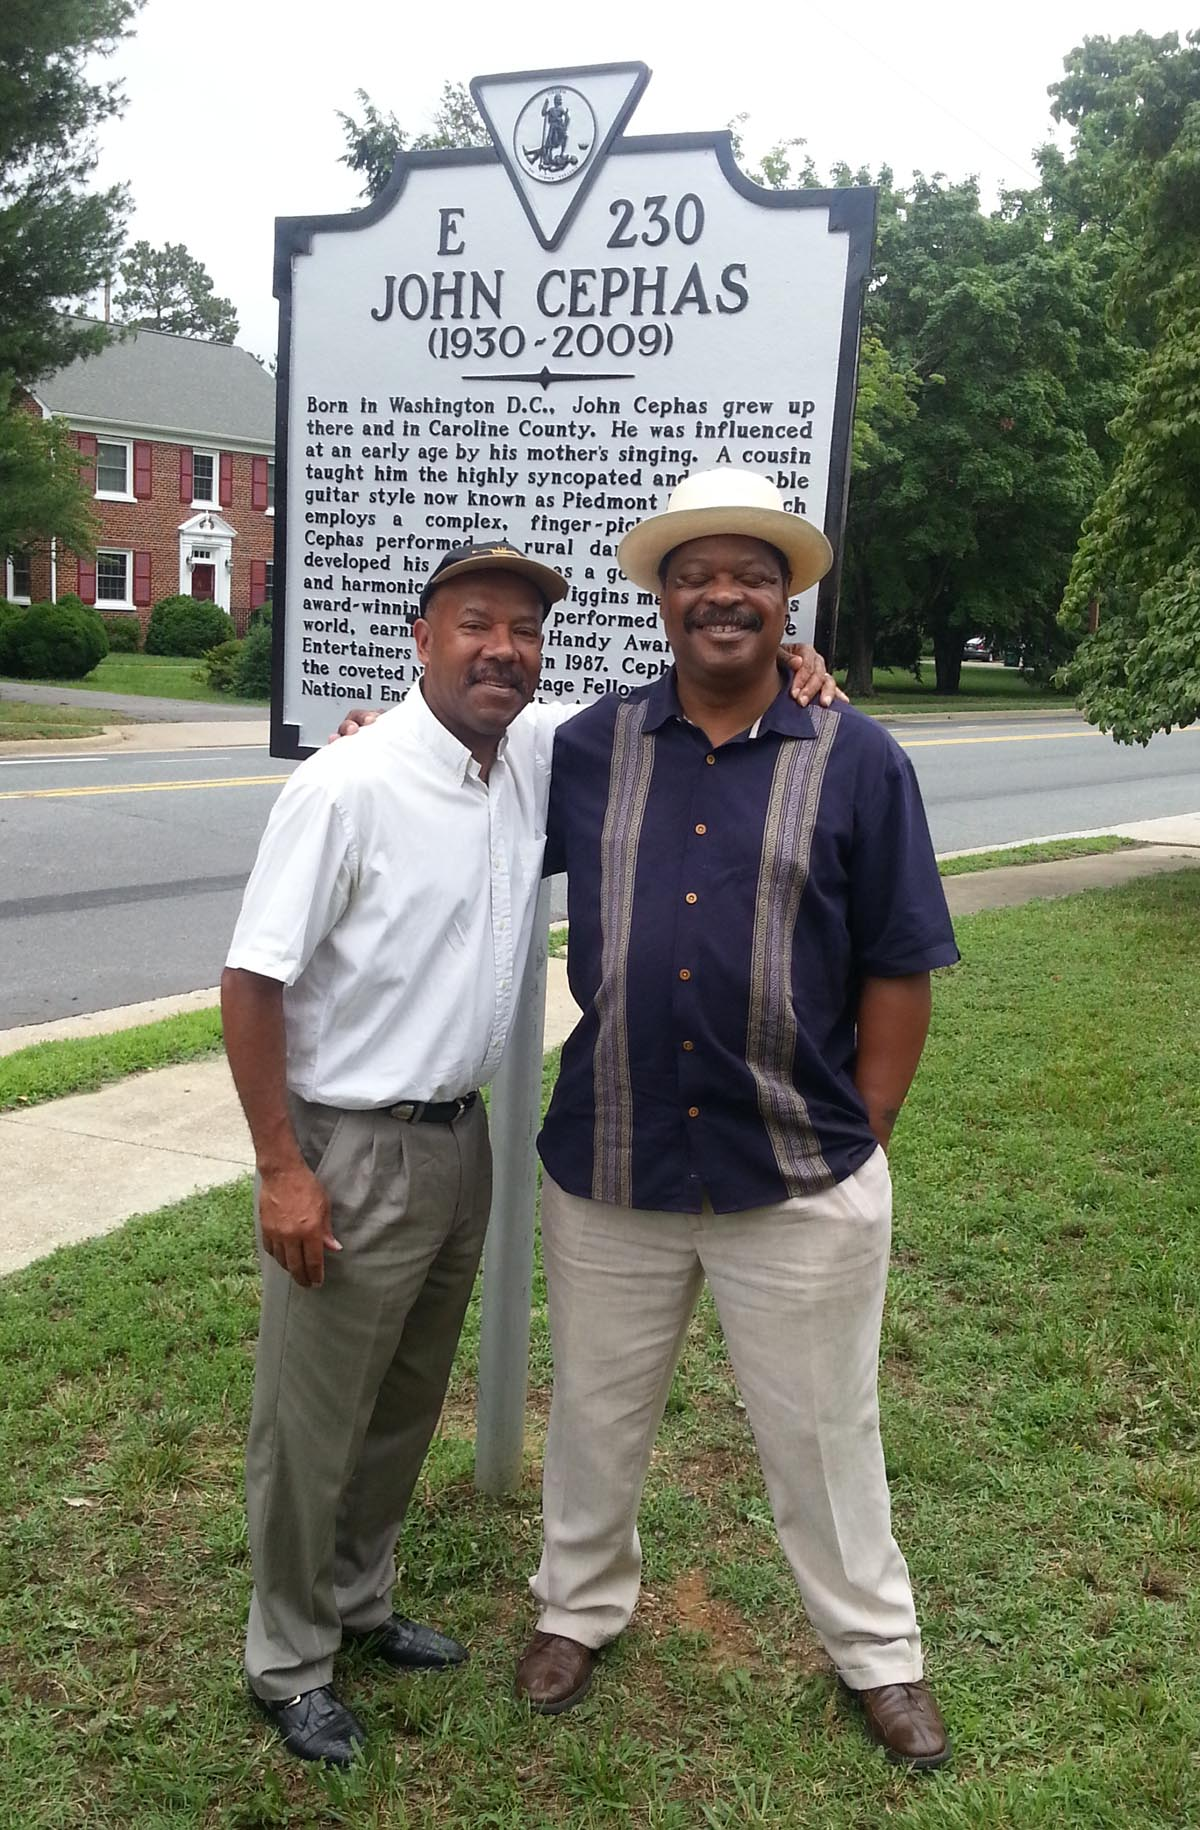 Michael with Phil Wiggins at the John Cephas Memorial Highway Marker, Bowling Green, Virginia 2014